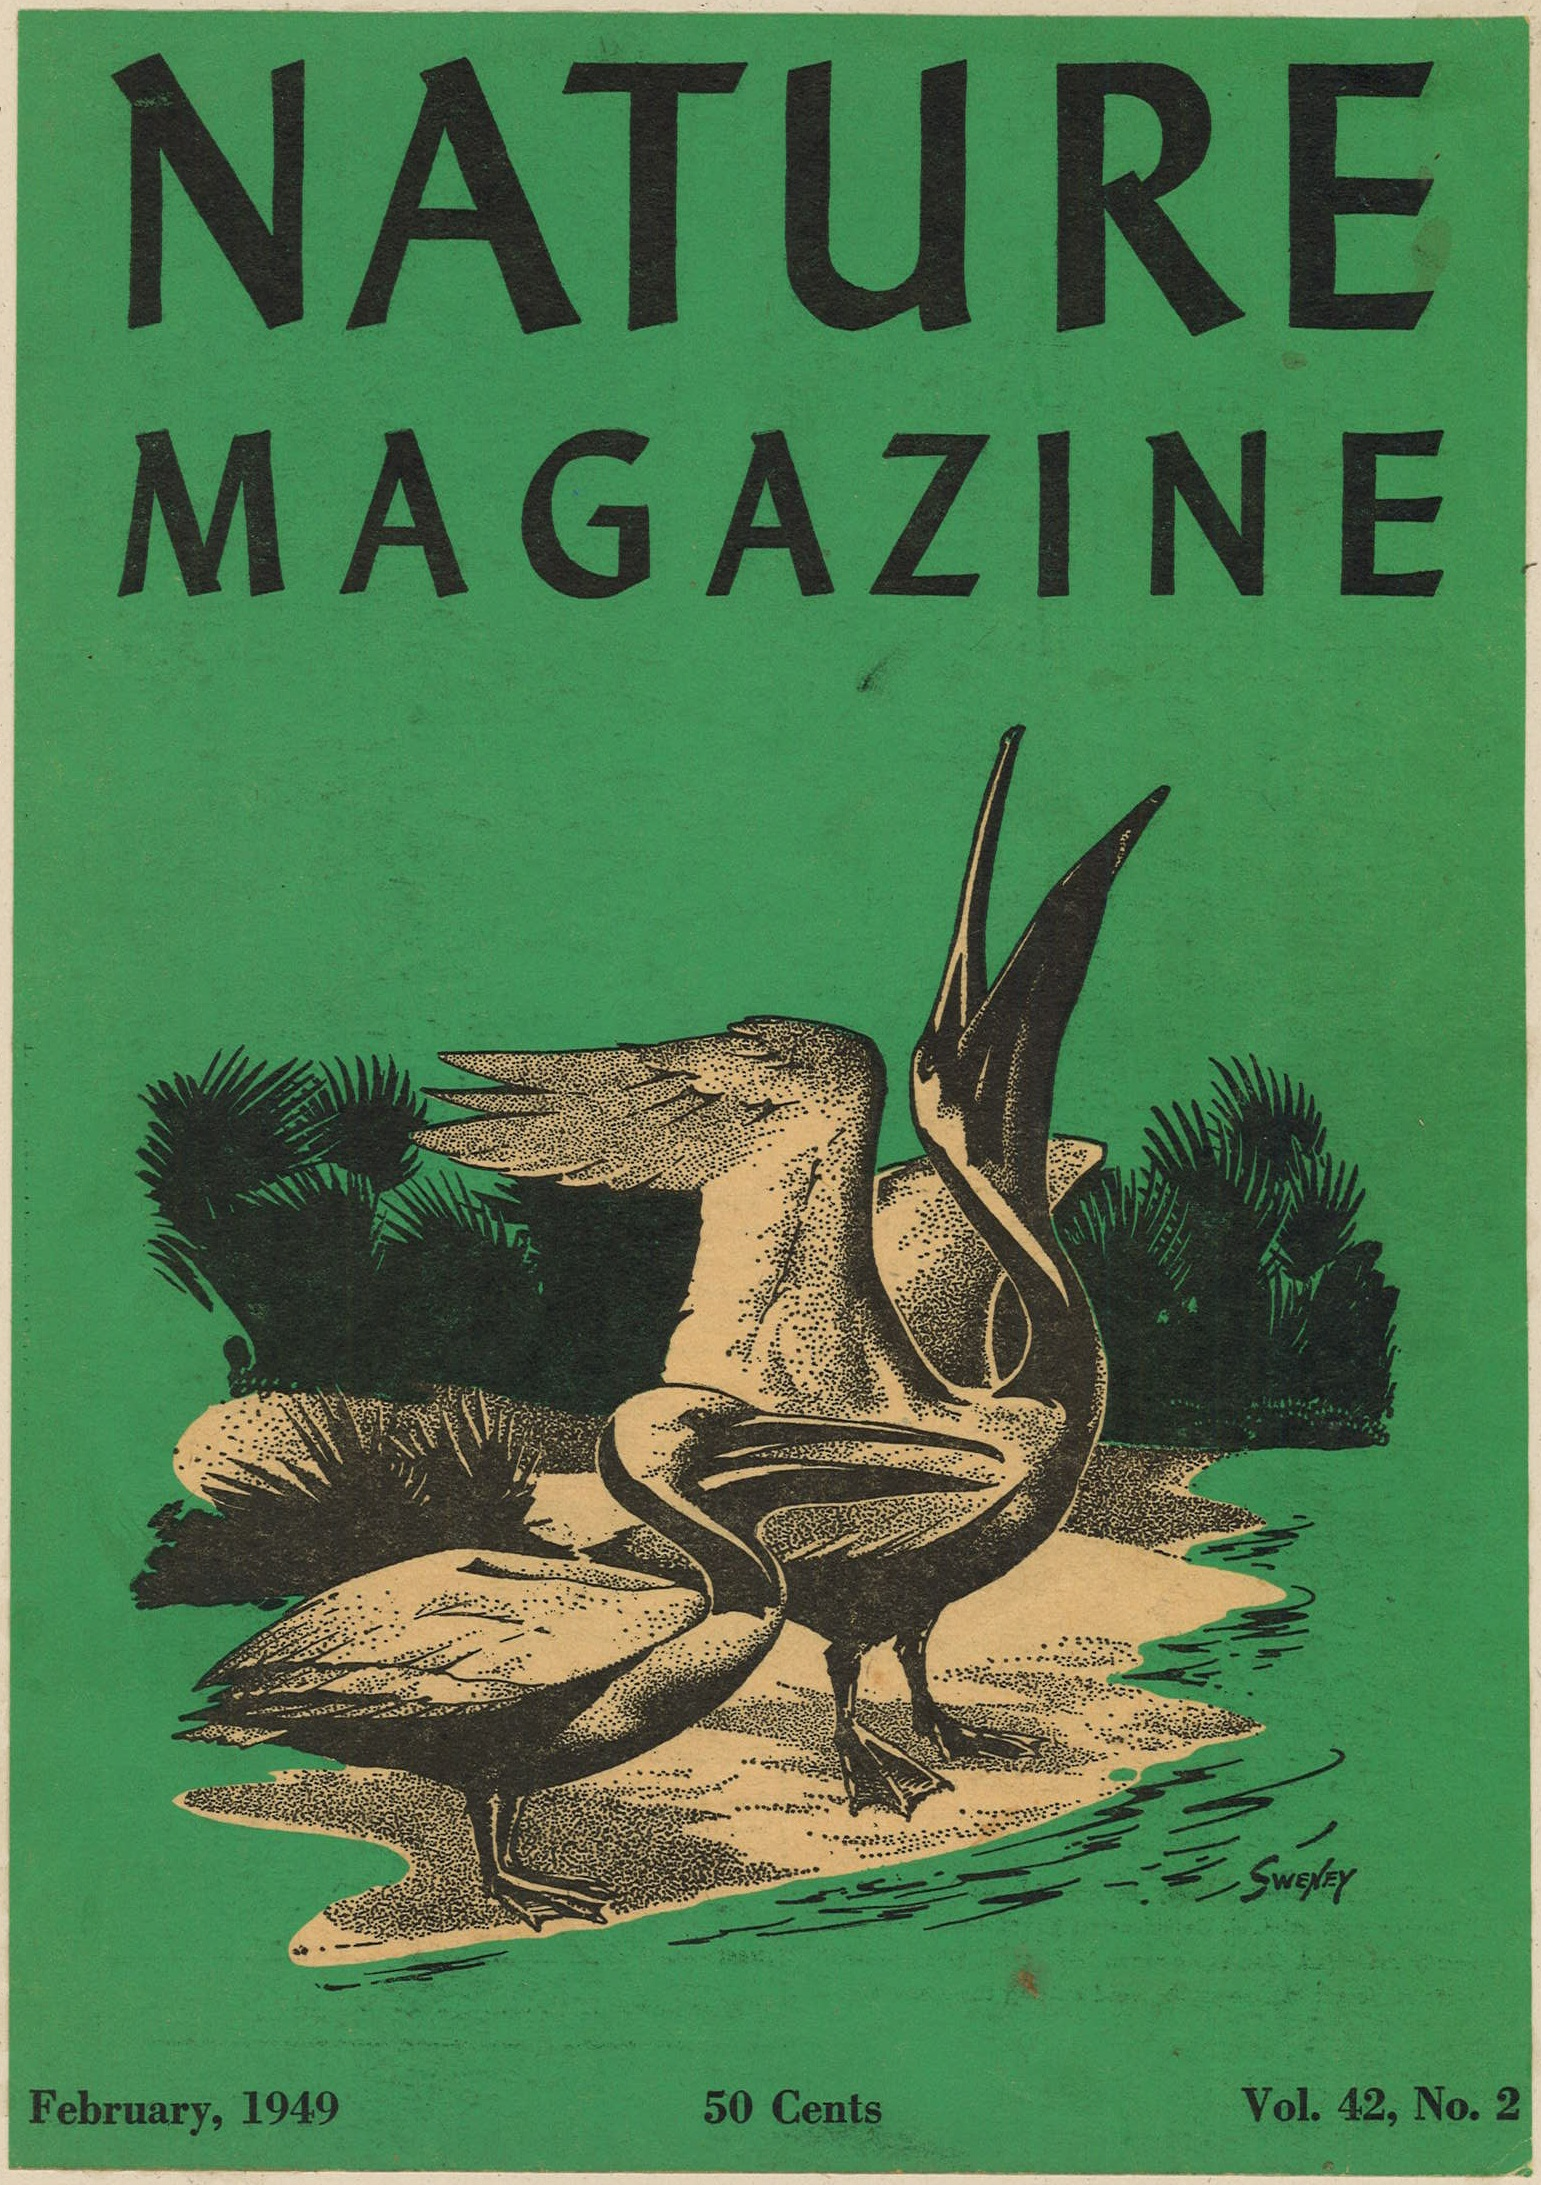 nature magazine 1949 covers february artist american periodicals sva library january sweney 1940 illustration collections lastly mysterious textured svapicsandmags